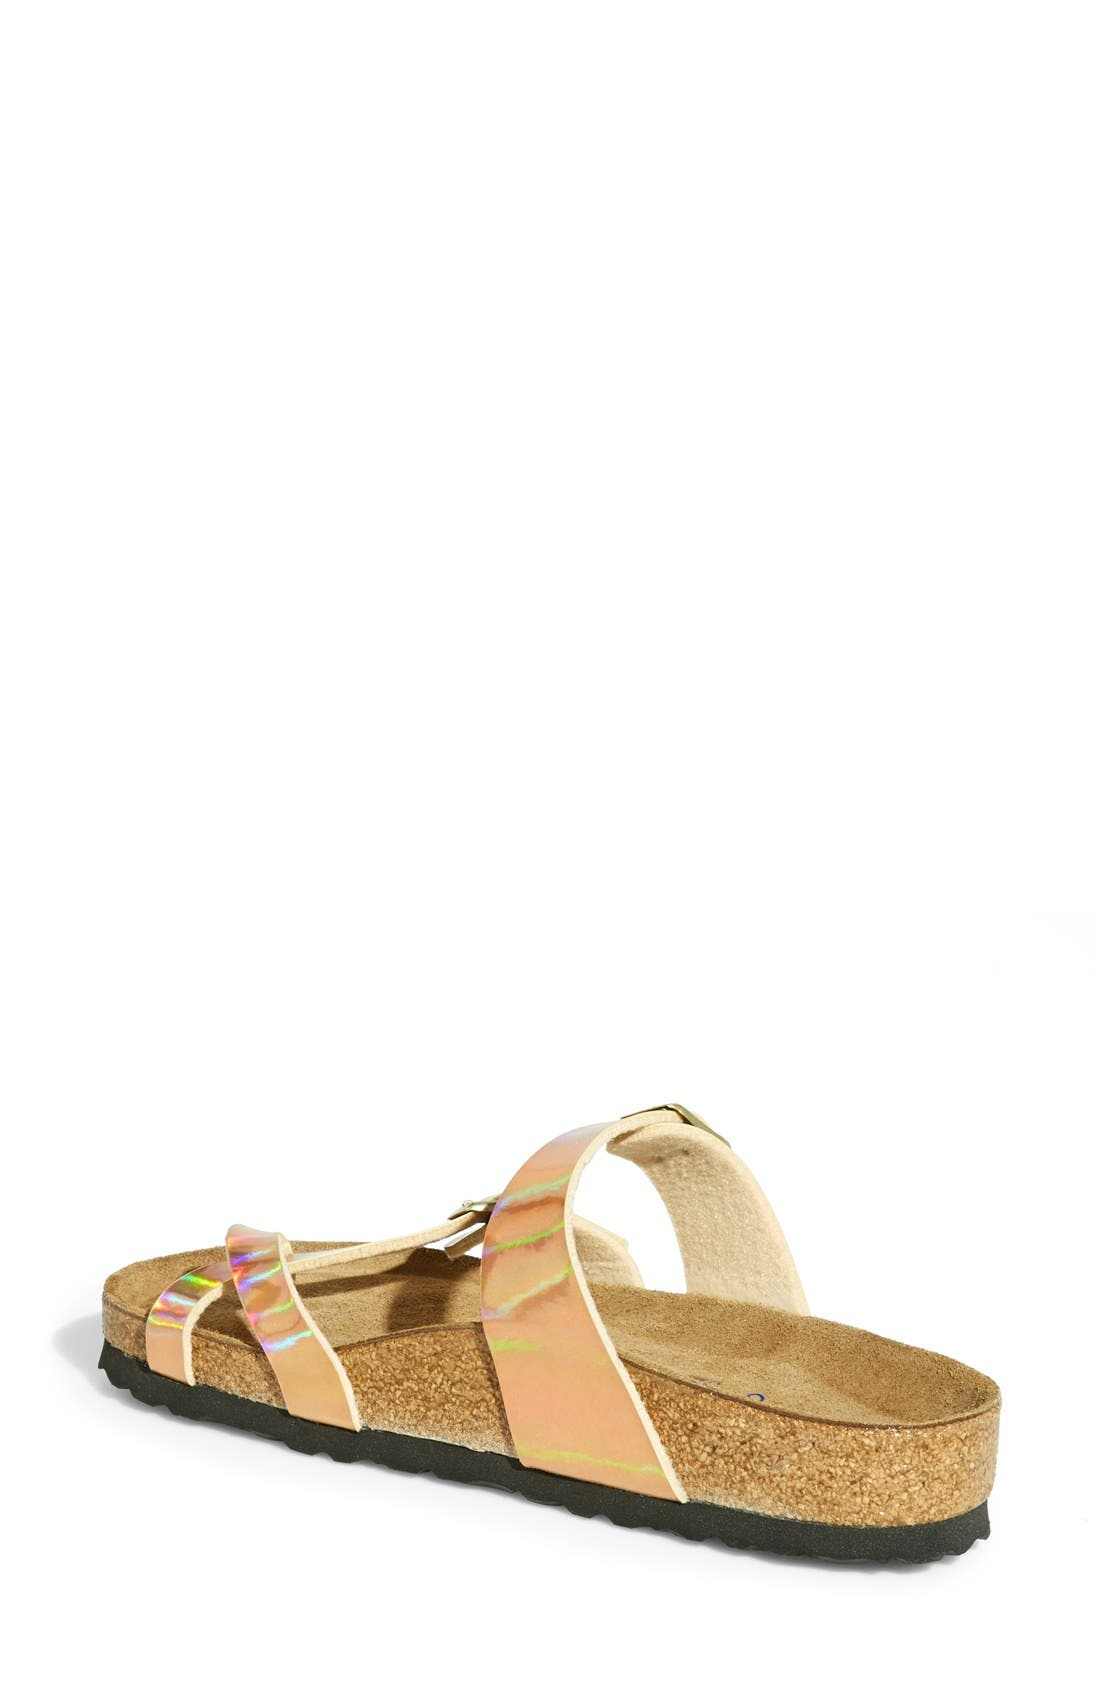 BIRKENSTOCK,                             'Mayari' Birko-Flor<sup>™</sup> Soft Footbed Sandal,                             Alternate thumbnail 4, color,                             750